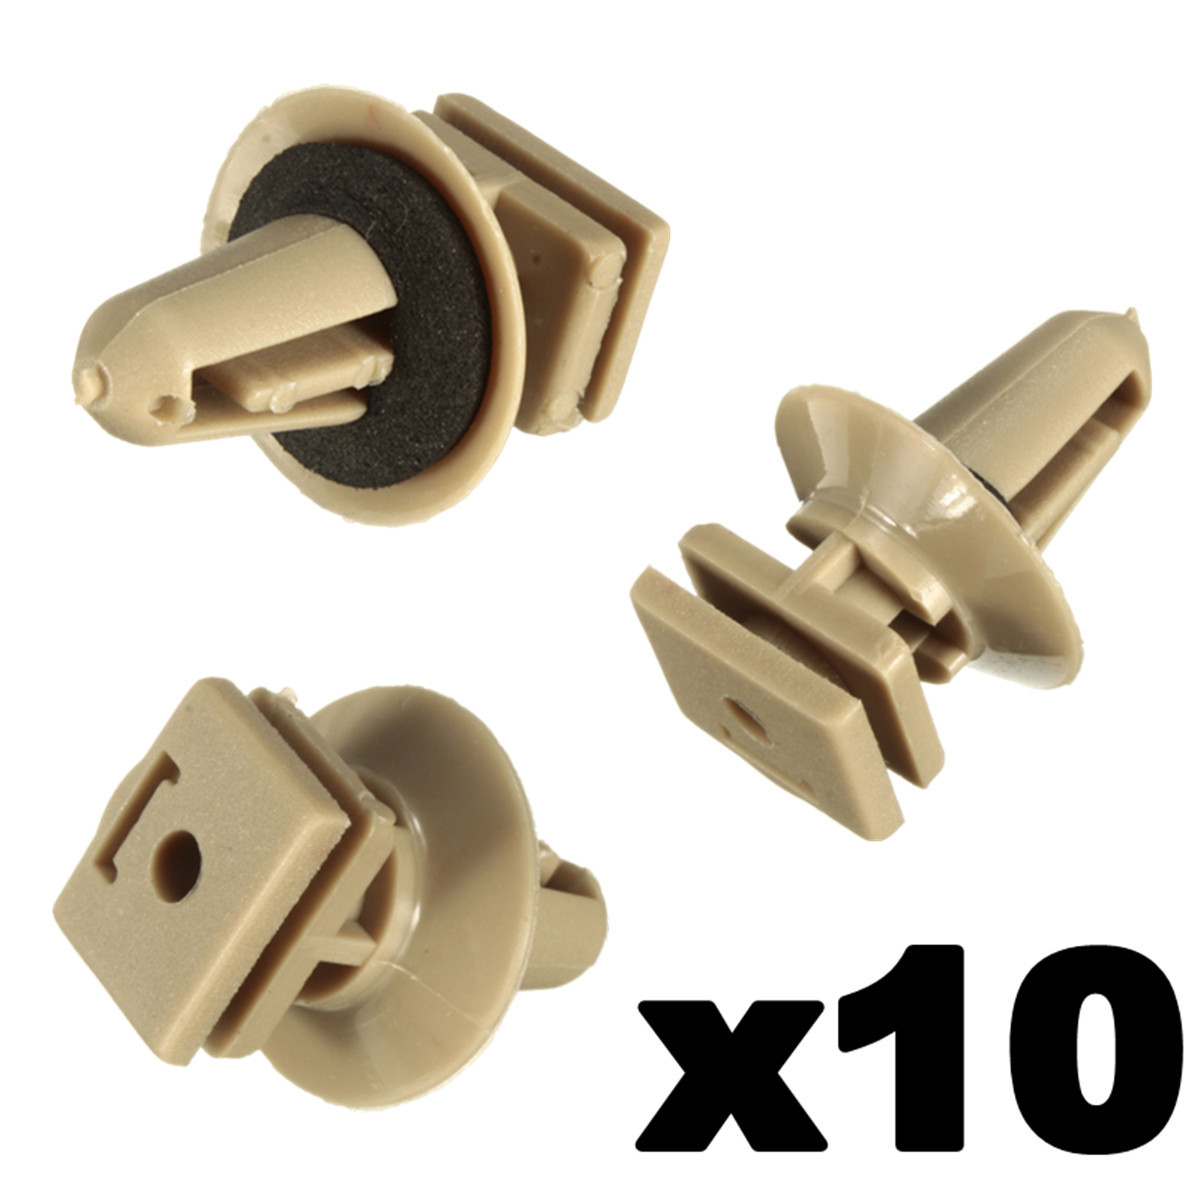 Tan Trim Clips Perfect for VW T4 /& T5 Carpet /& Van Linings 10x 8mm Long Beige